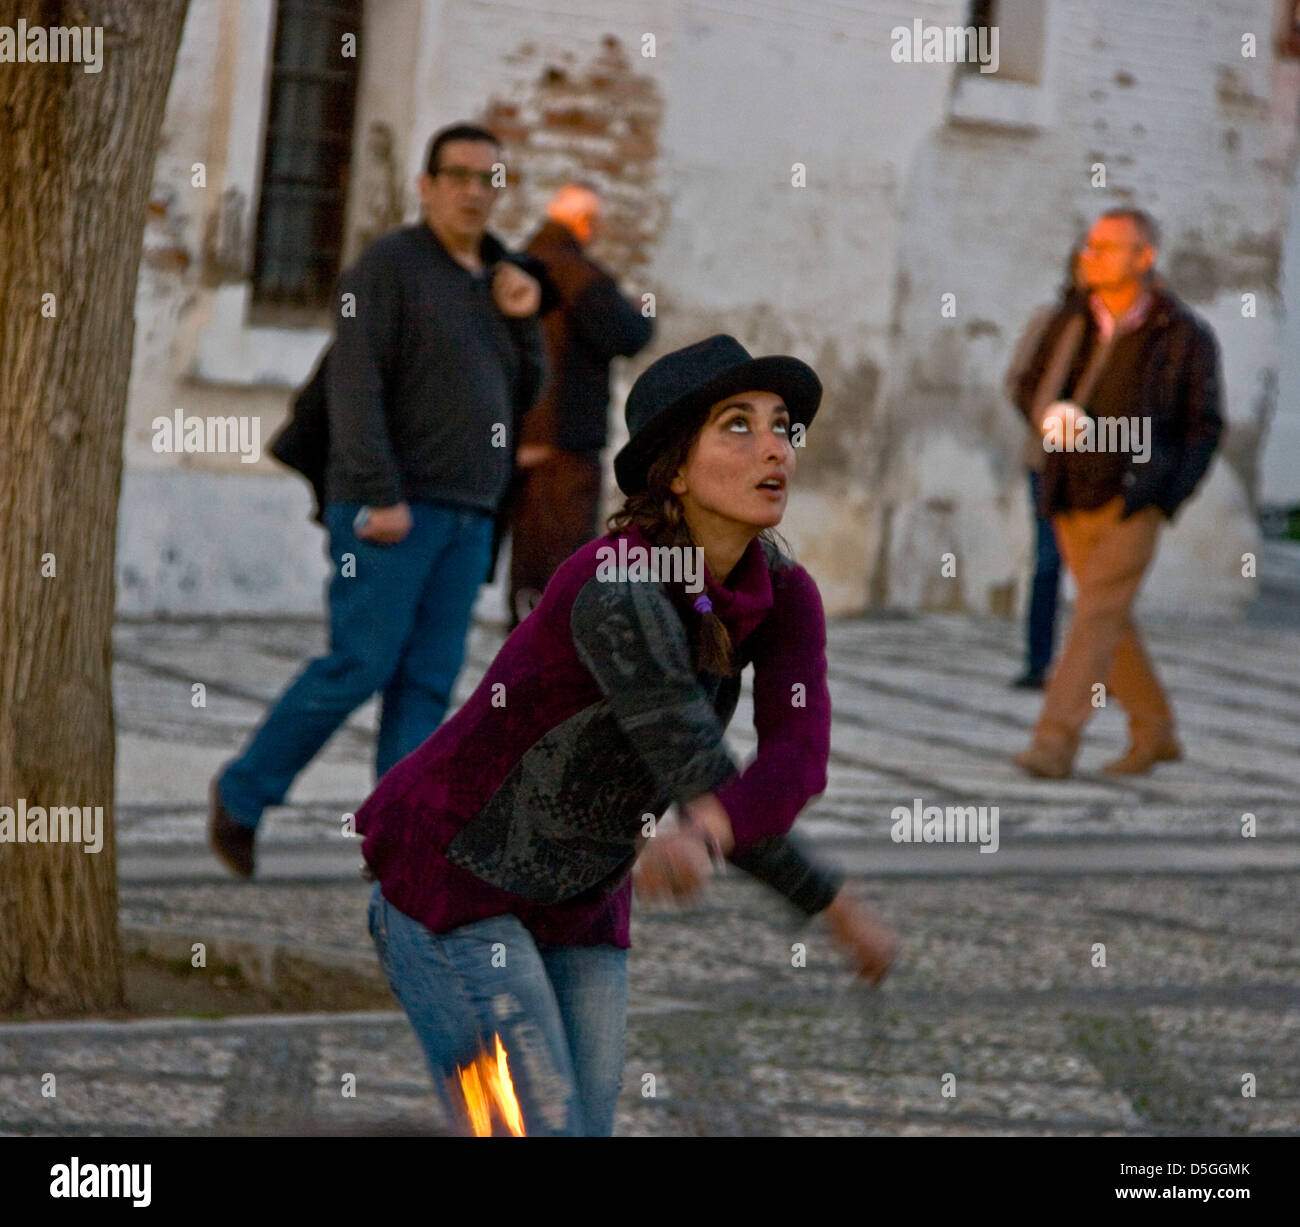 Female fire eating juggler performing at dusk Mirador San Nicolas Granada Andalusia Spain Europe - Stock Image